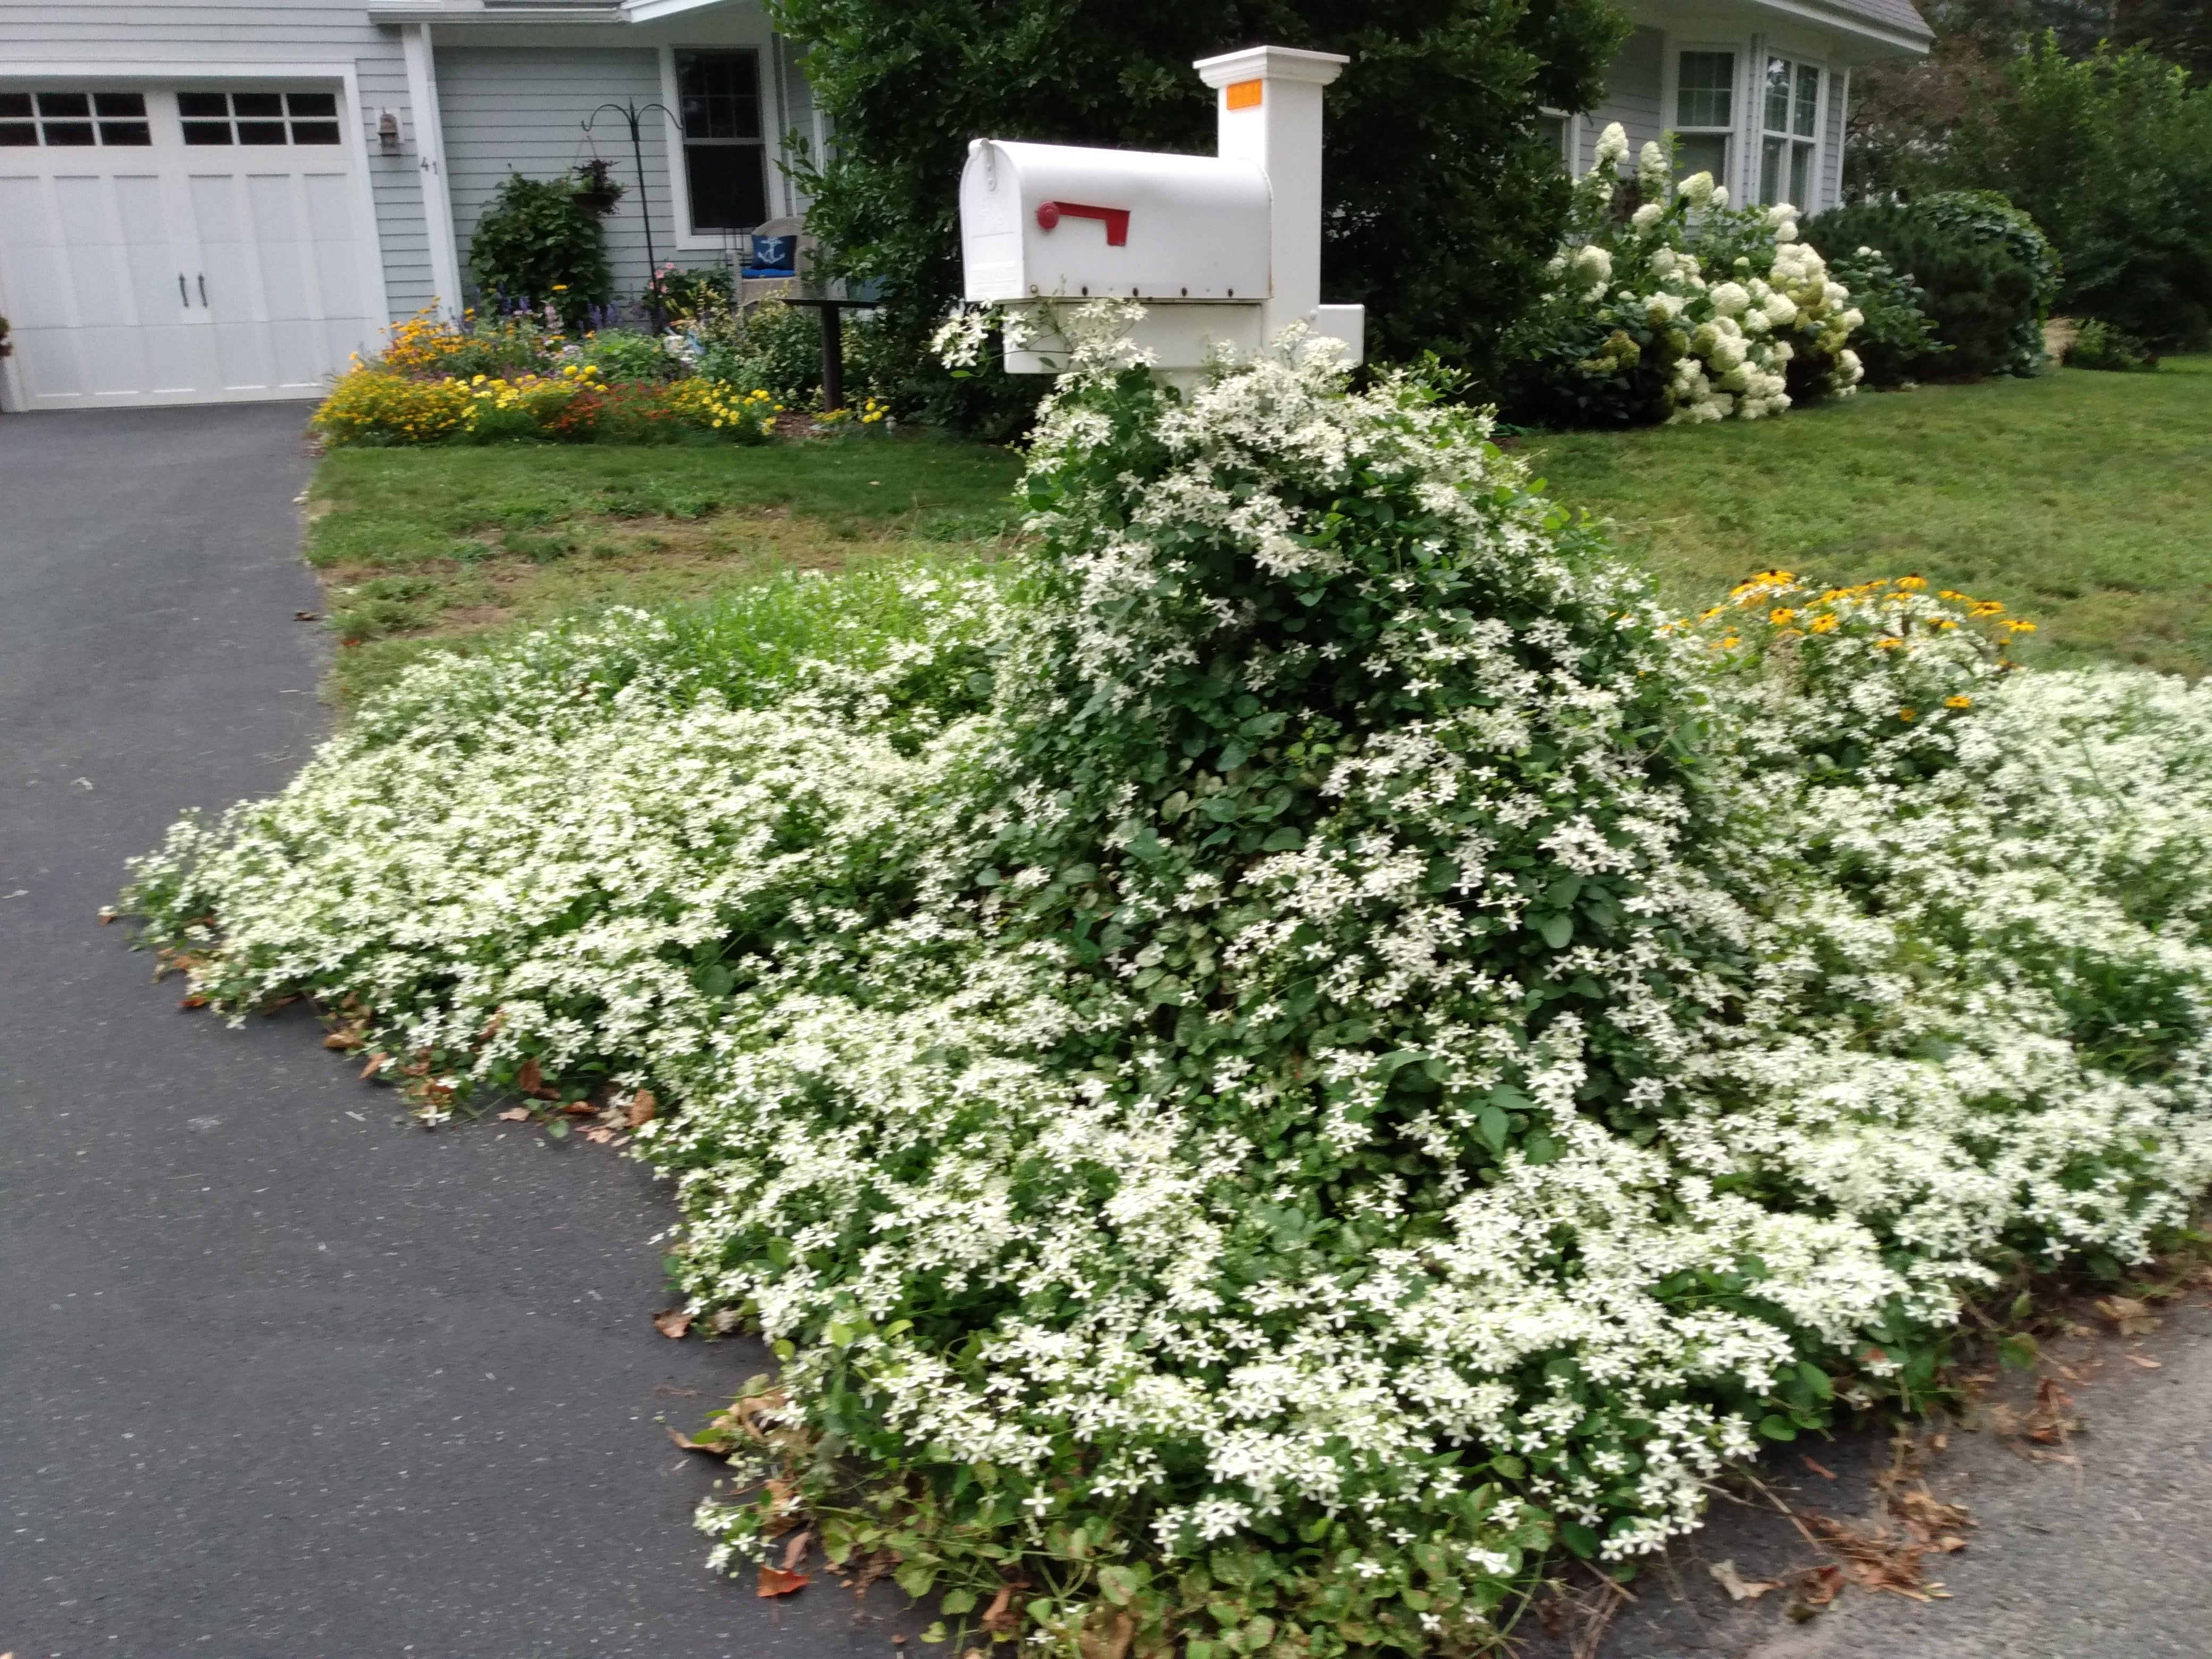 mailbox surrounded by white flowered vines